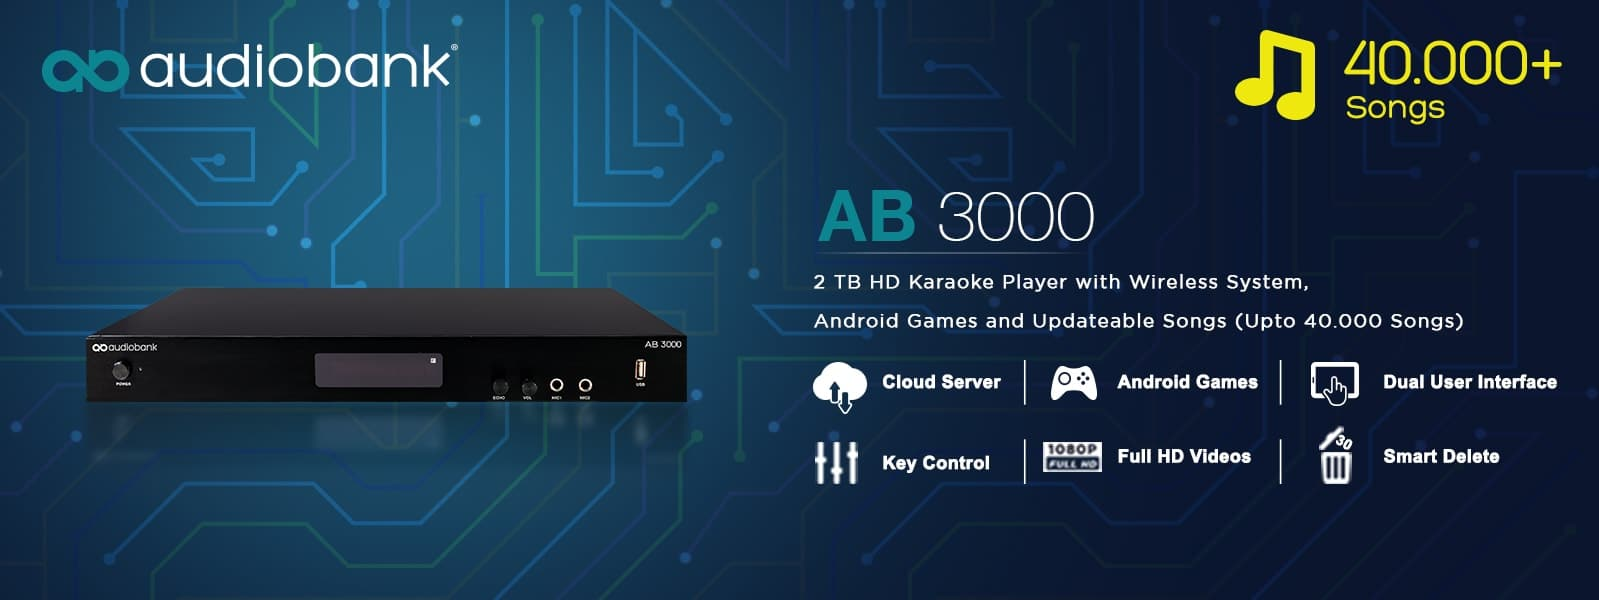 Bless Audio - Audiobank AB-3000 + Hdd 4 Tera(70.000 Lagu)Full Hd 1080 P - Blanja.com